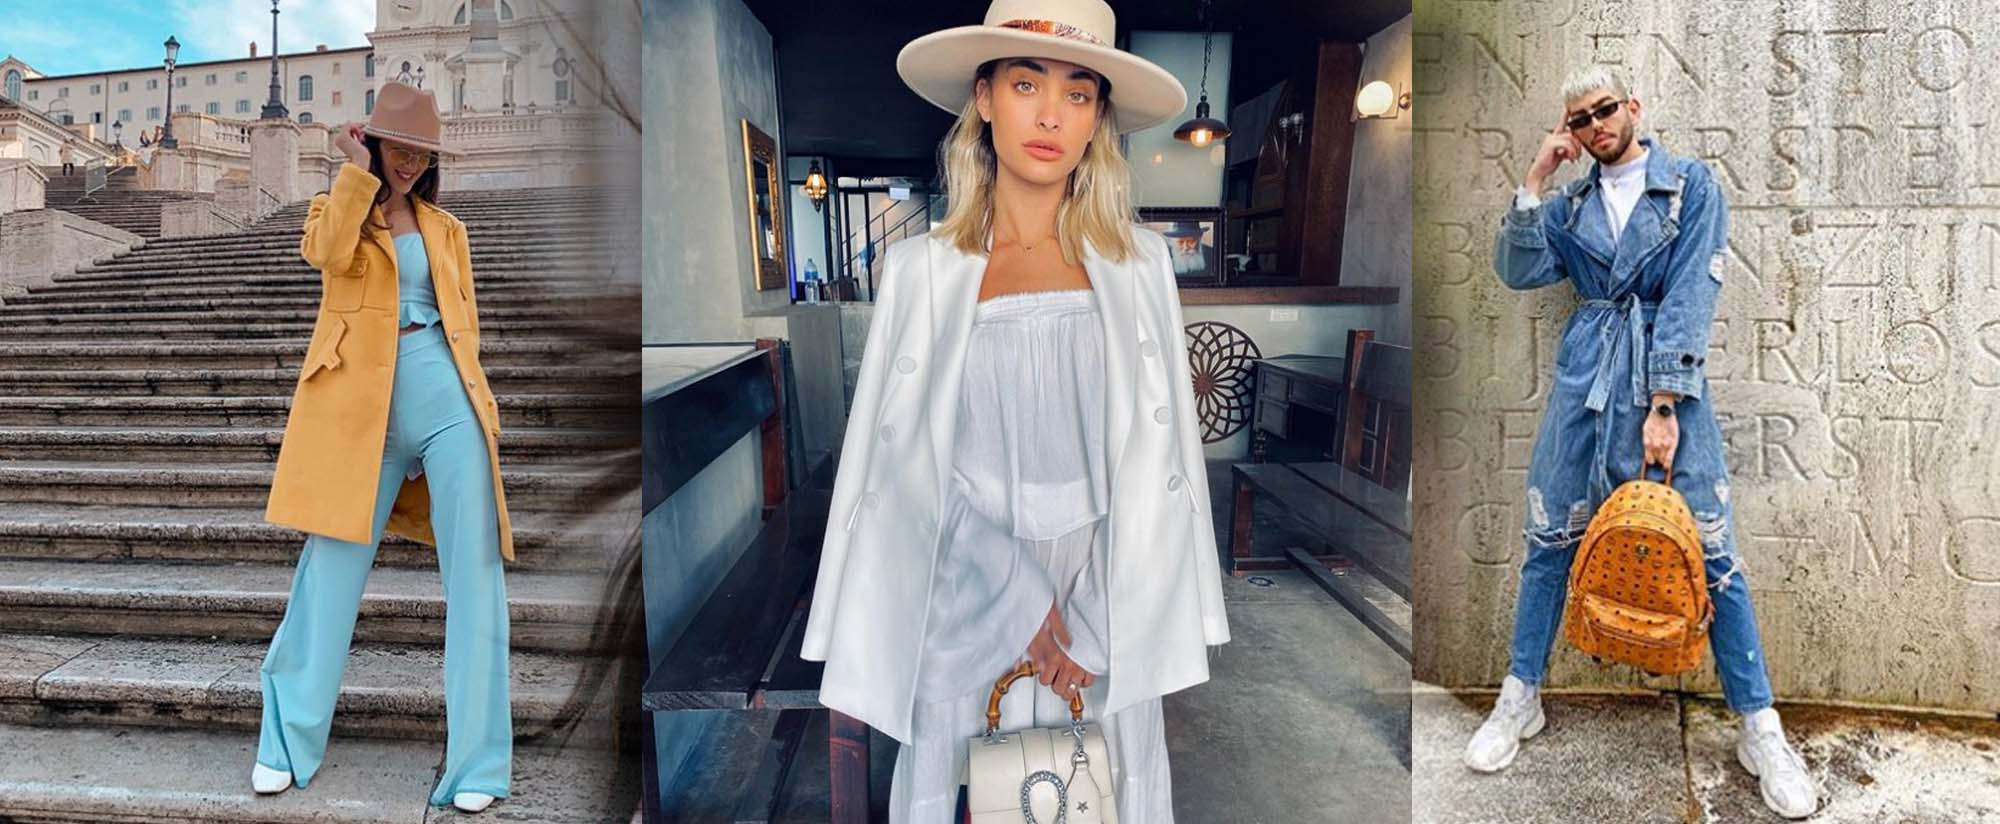 Instagram Style- TOP 5 Fashion Look. November 2019